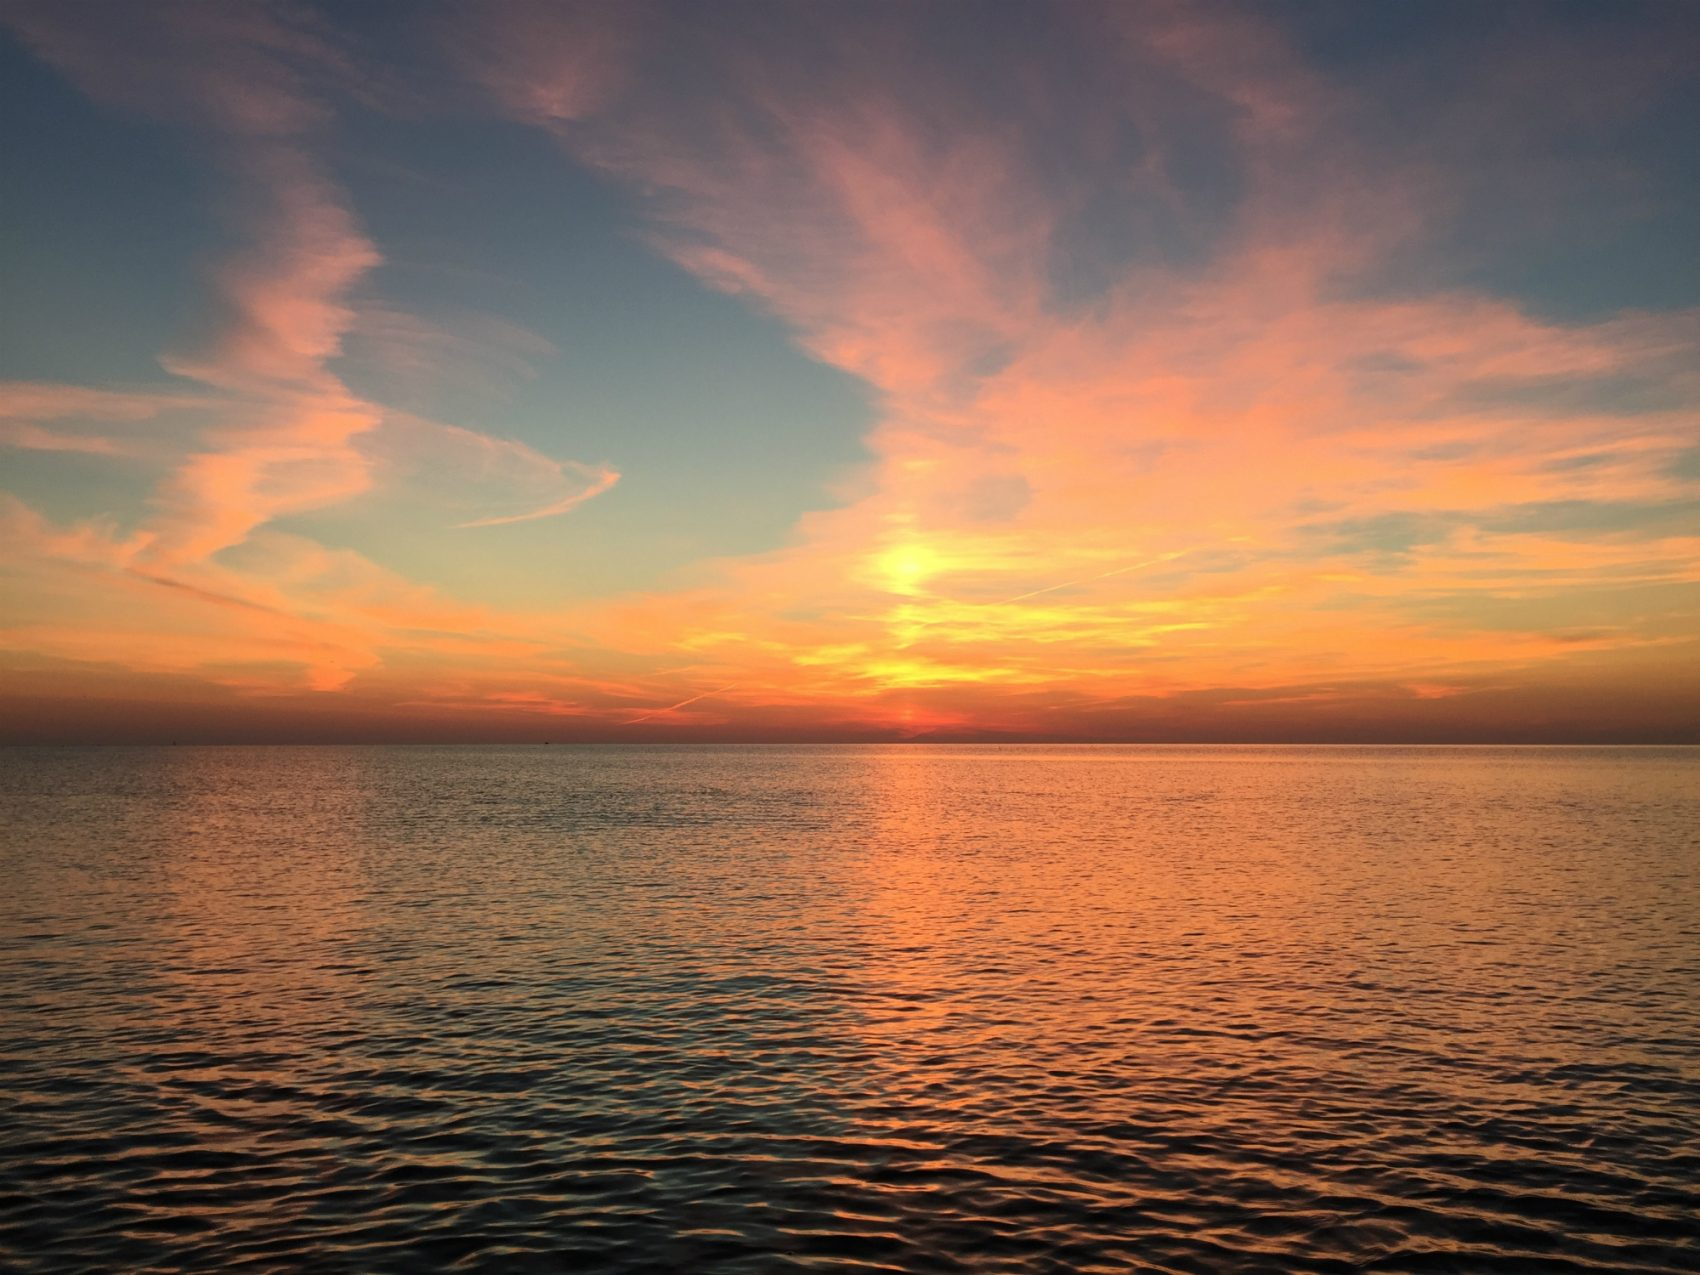 For those who aren't usually outside or even awake for a sunrise, writes Collin Sheehan, now is your chance to enjoy sunset's less popular sibling. Picutred: Sunrise from Plum Island taken in mid-September, back when you had to get up early for it.(Author/Courtesy)